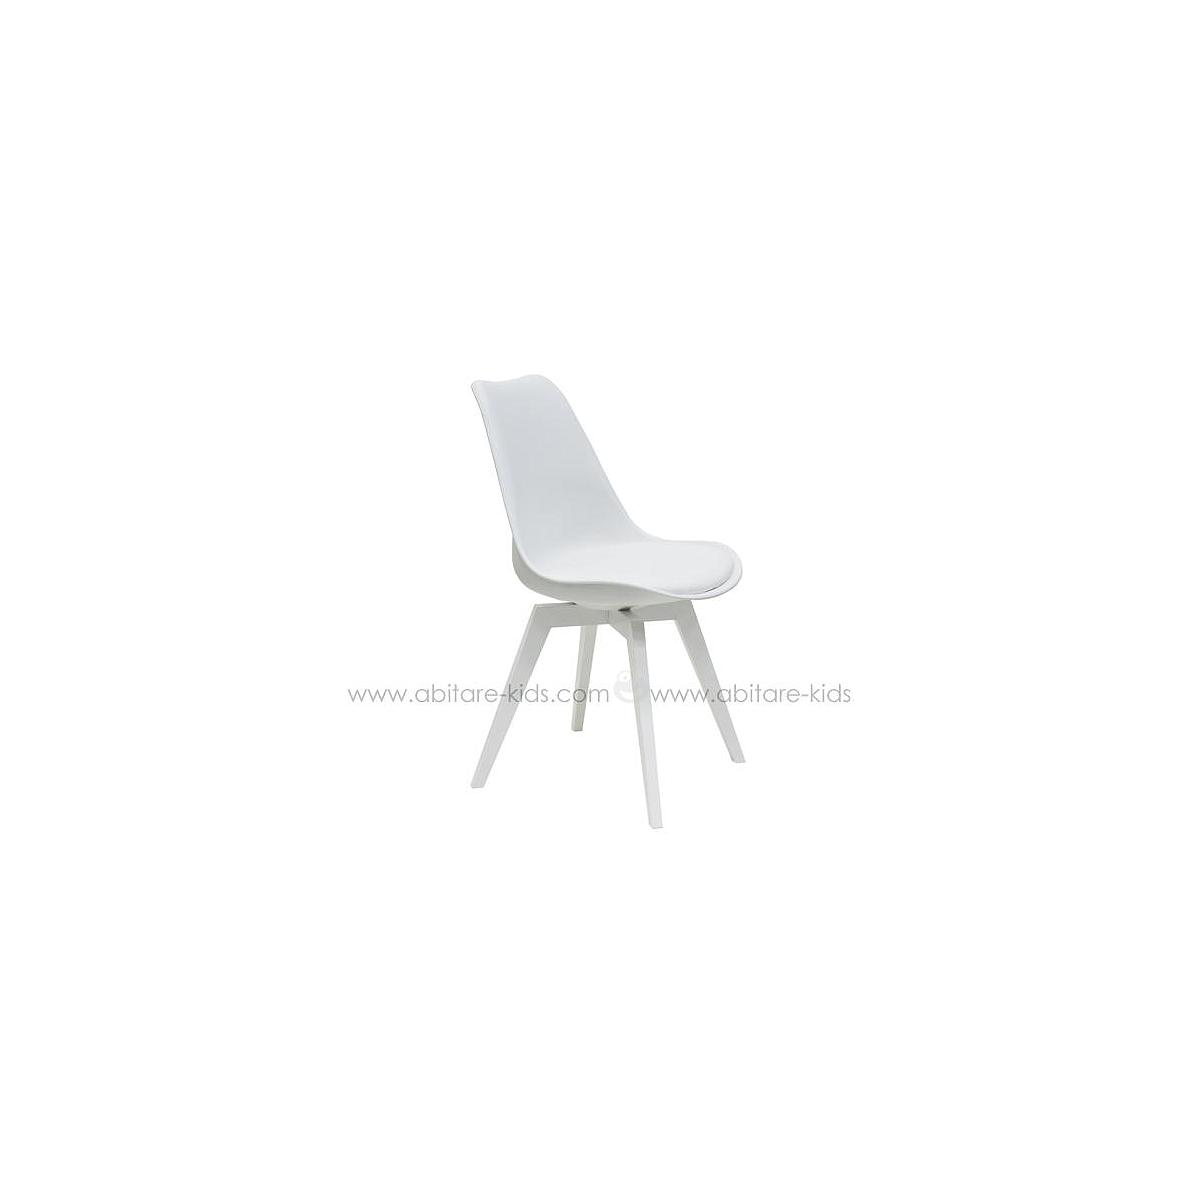 C-BAR by Tenzo Chaise Gina-Bess Assise blanche et pied blanc